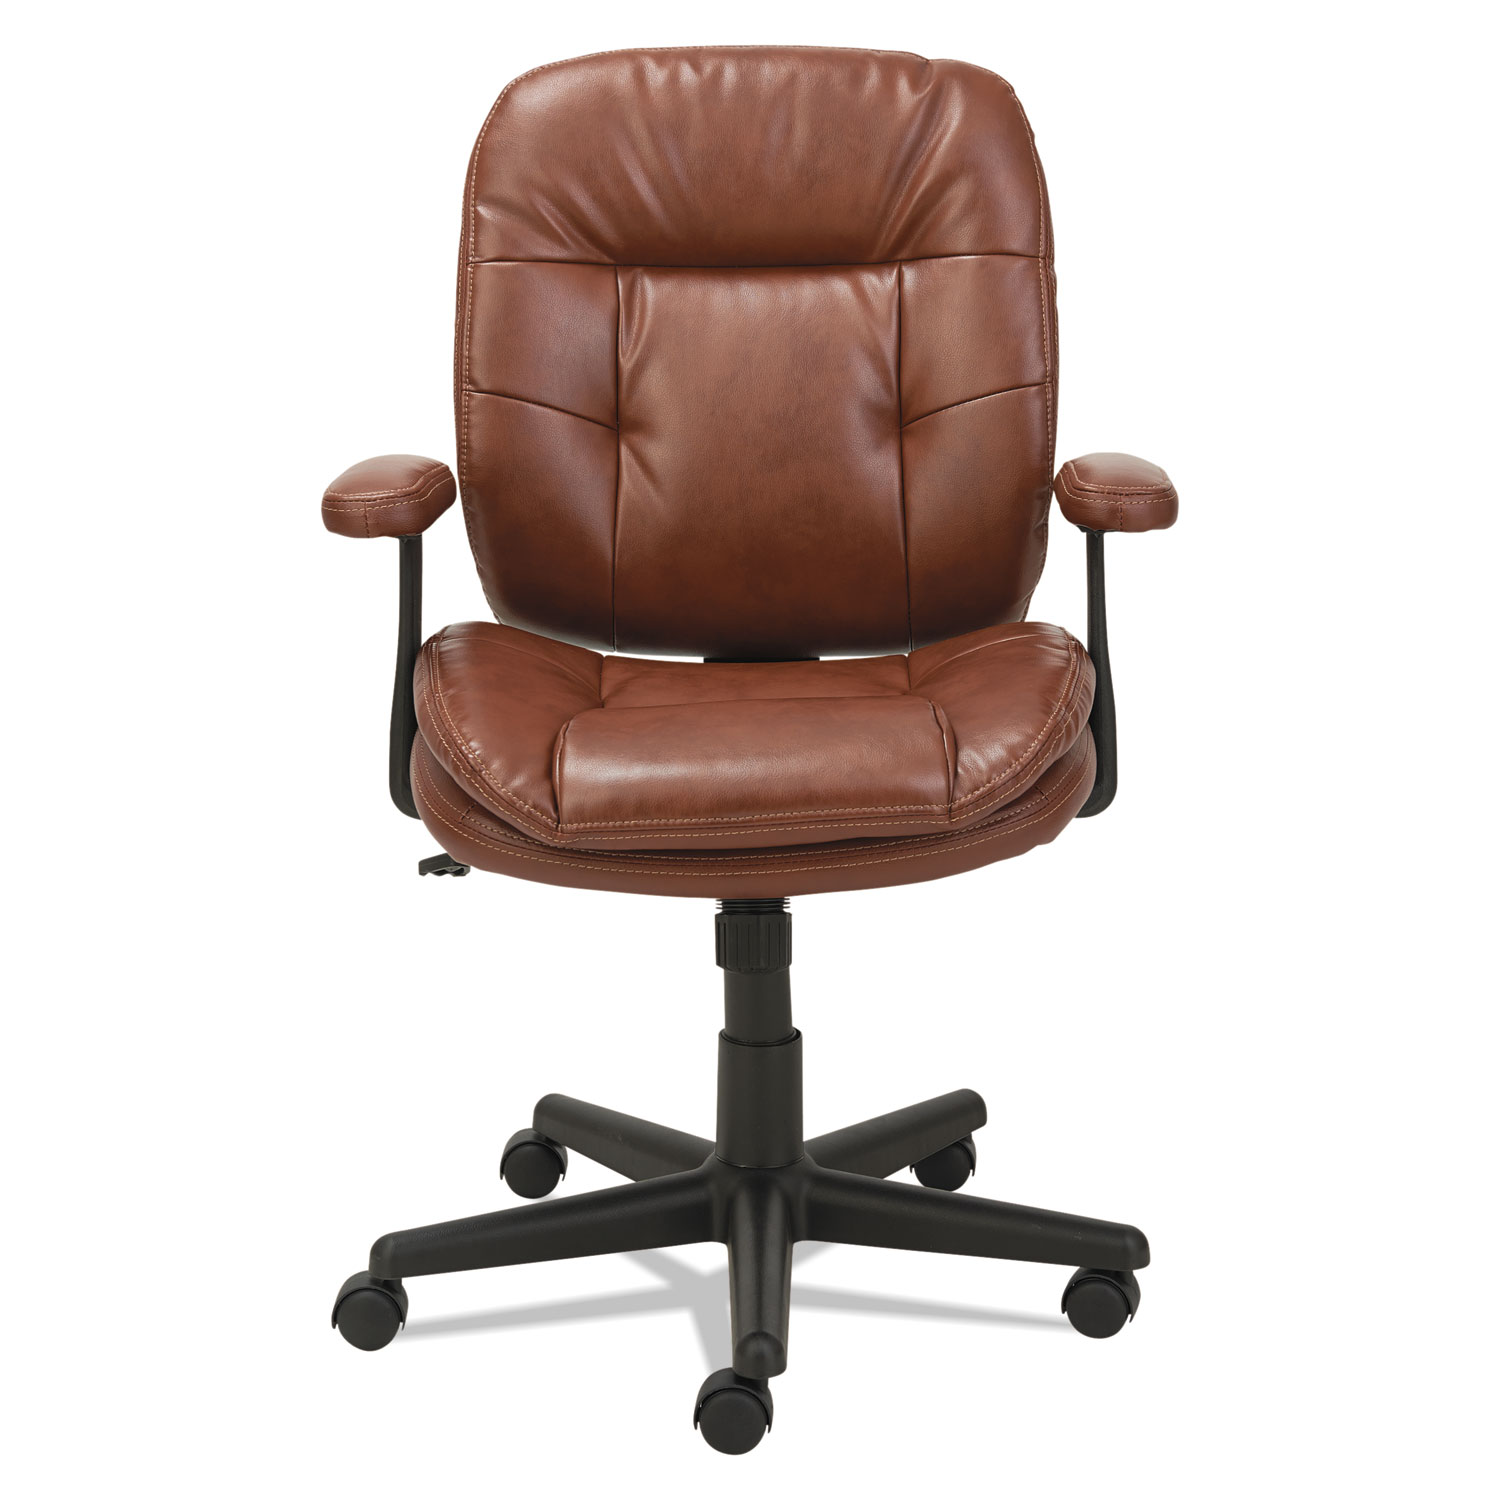 Swivel Tilt Leather Task Chair by OIF OIFST4859 TimeSupplies